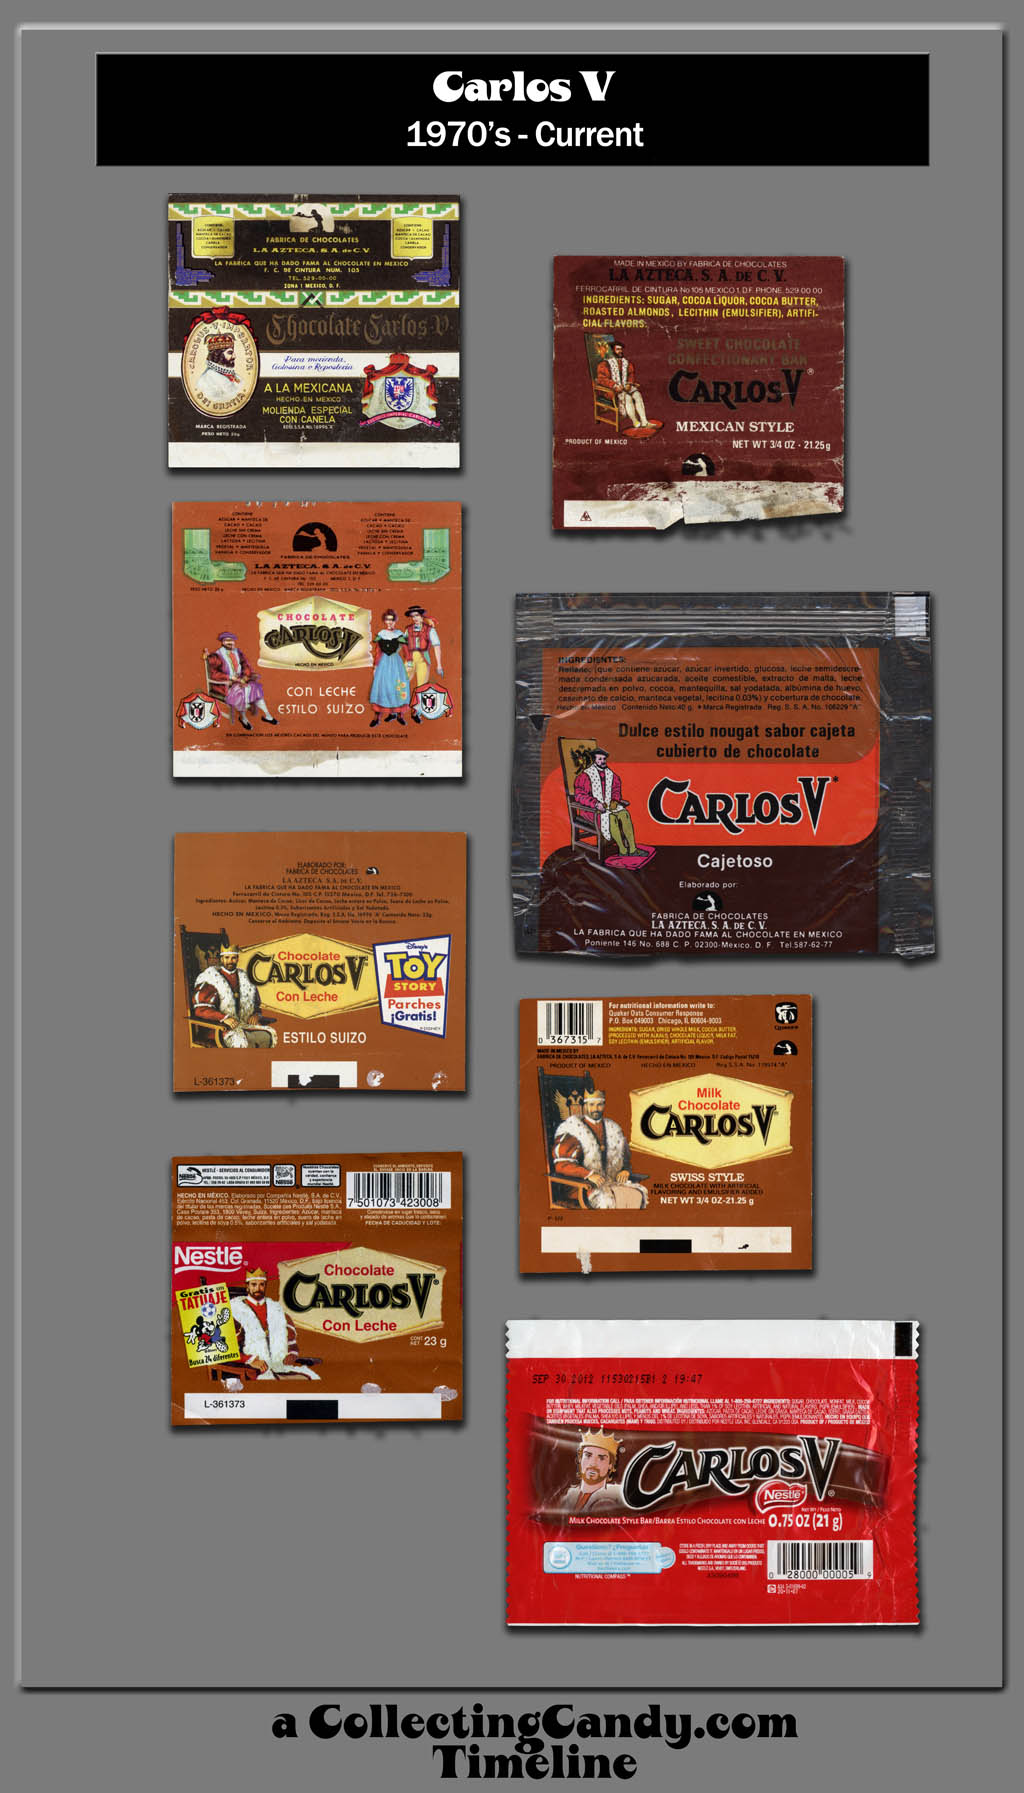 Worksheet History Of Chocolate Bars carlos v building a history for the king of chocolate bars collectingcandy